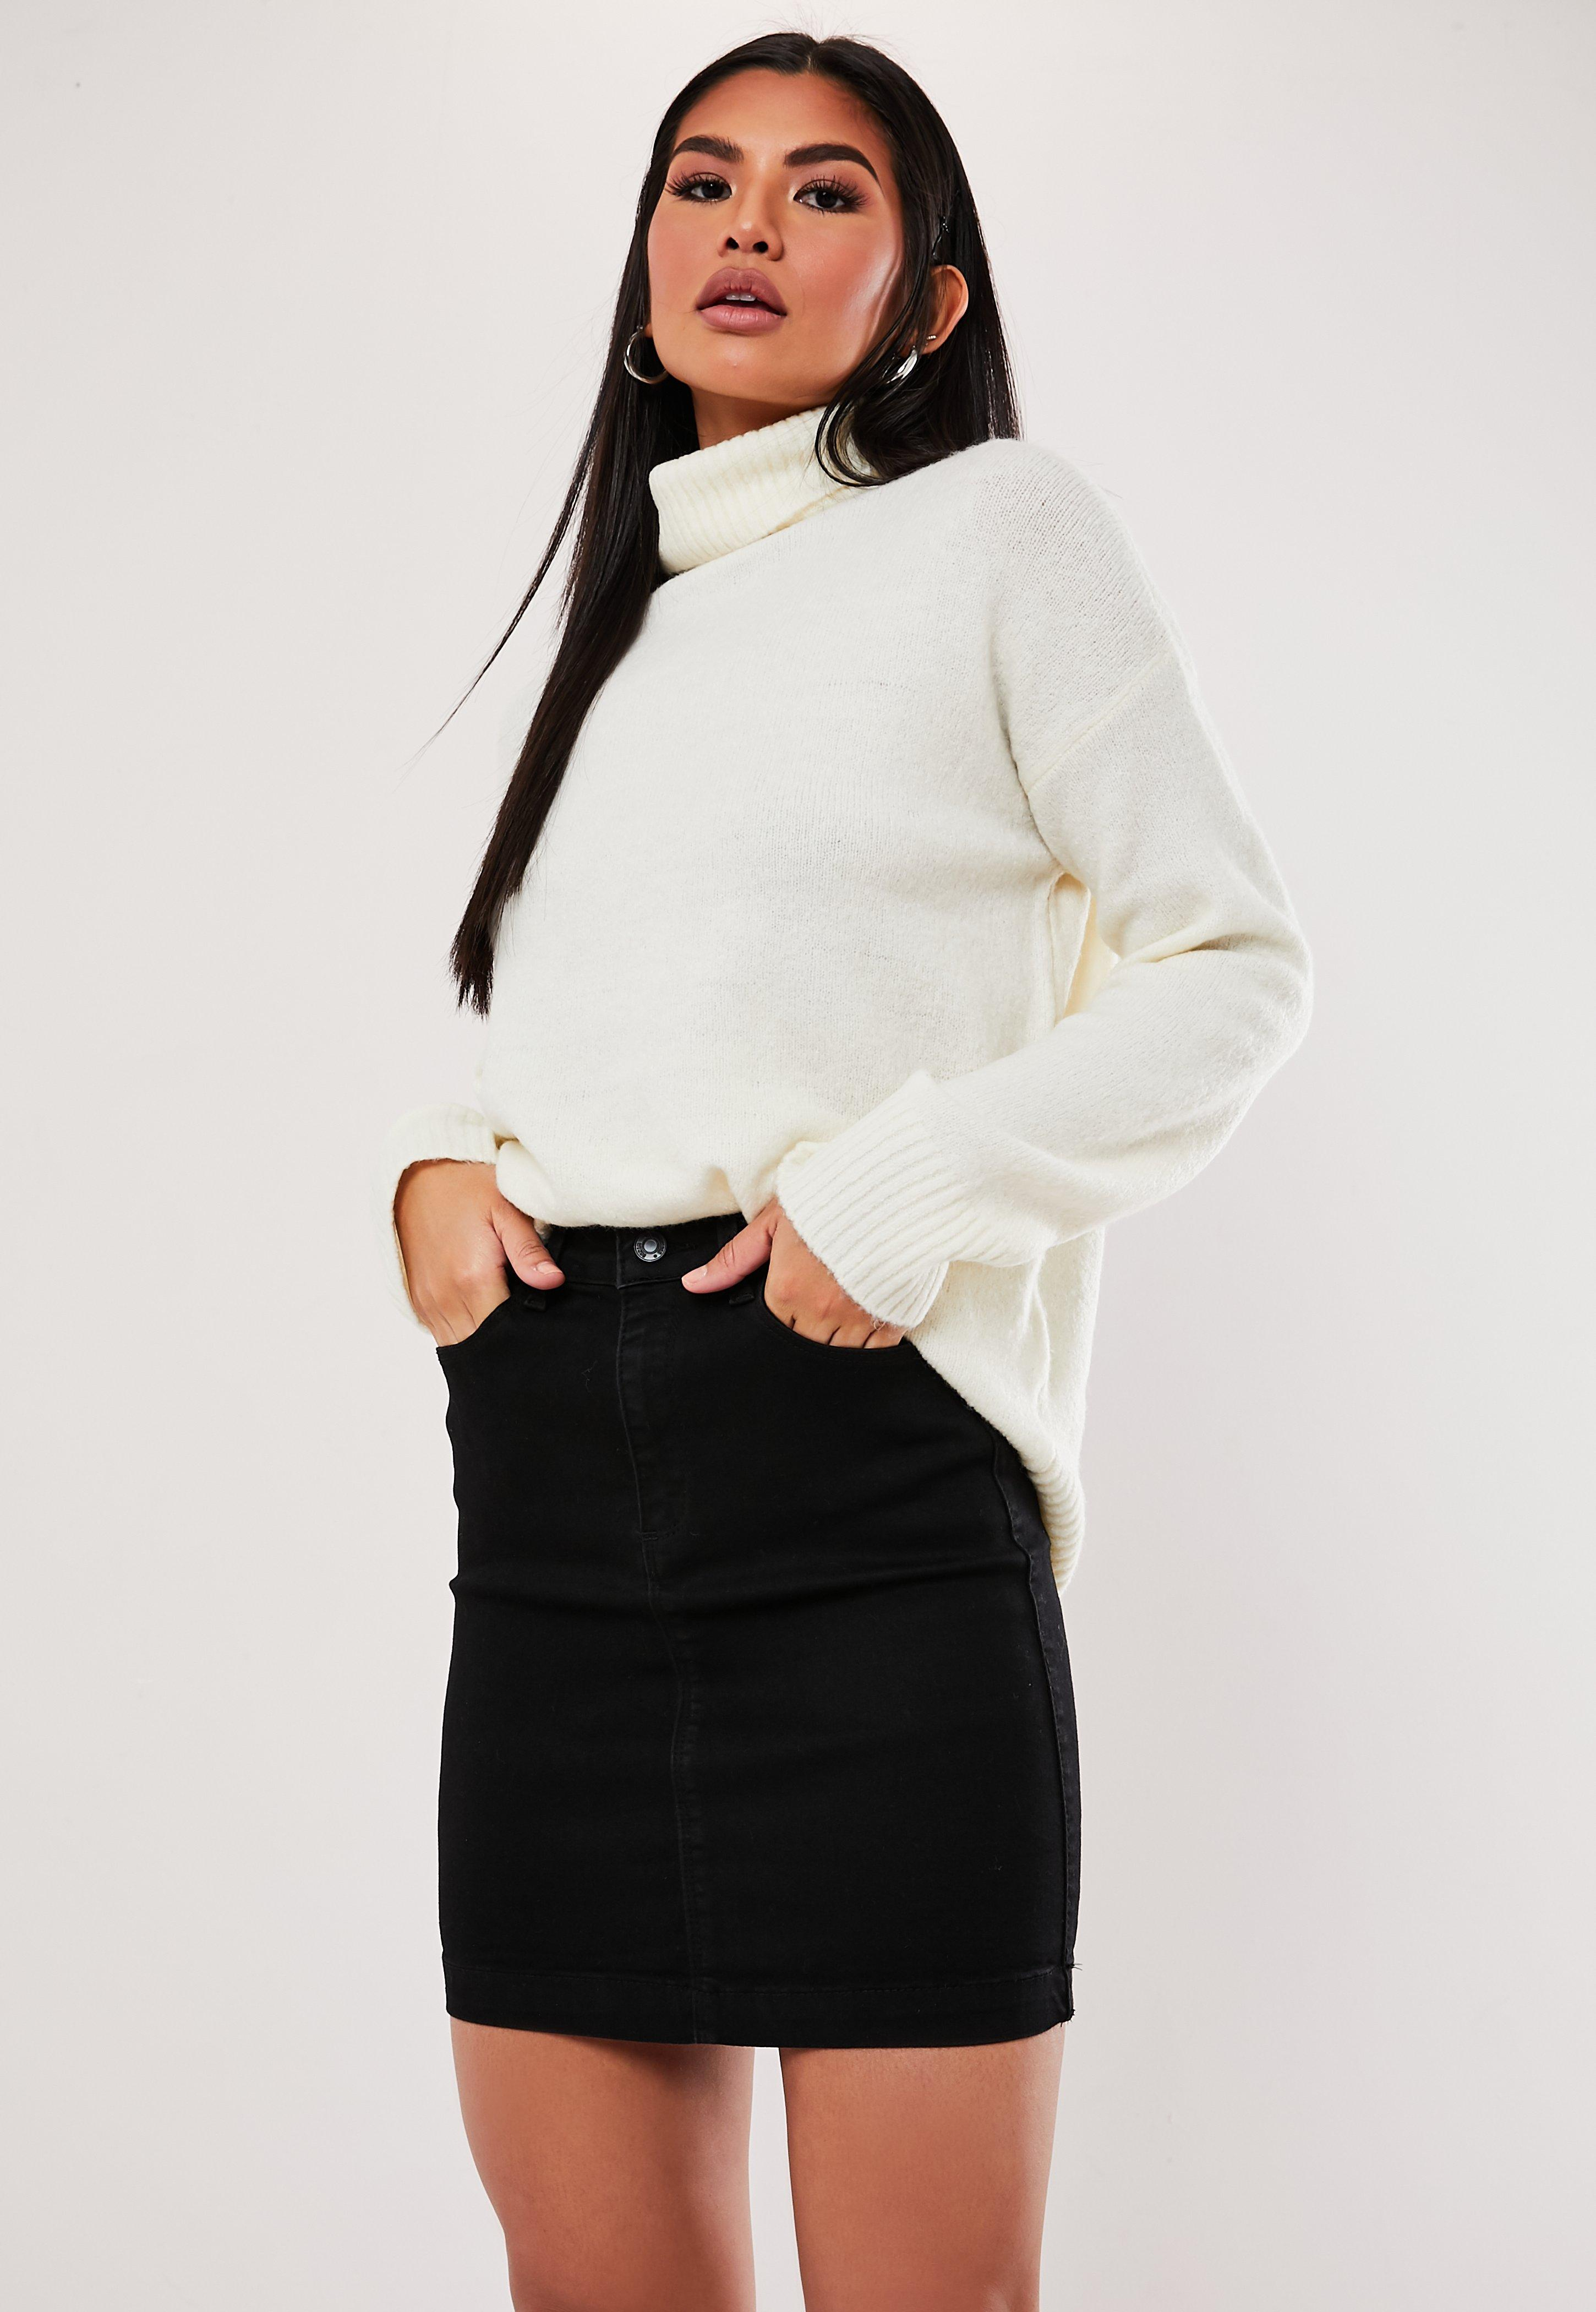 ac0322aa27a Petite Clothing, Womens Petite Clothes Online - Missguided